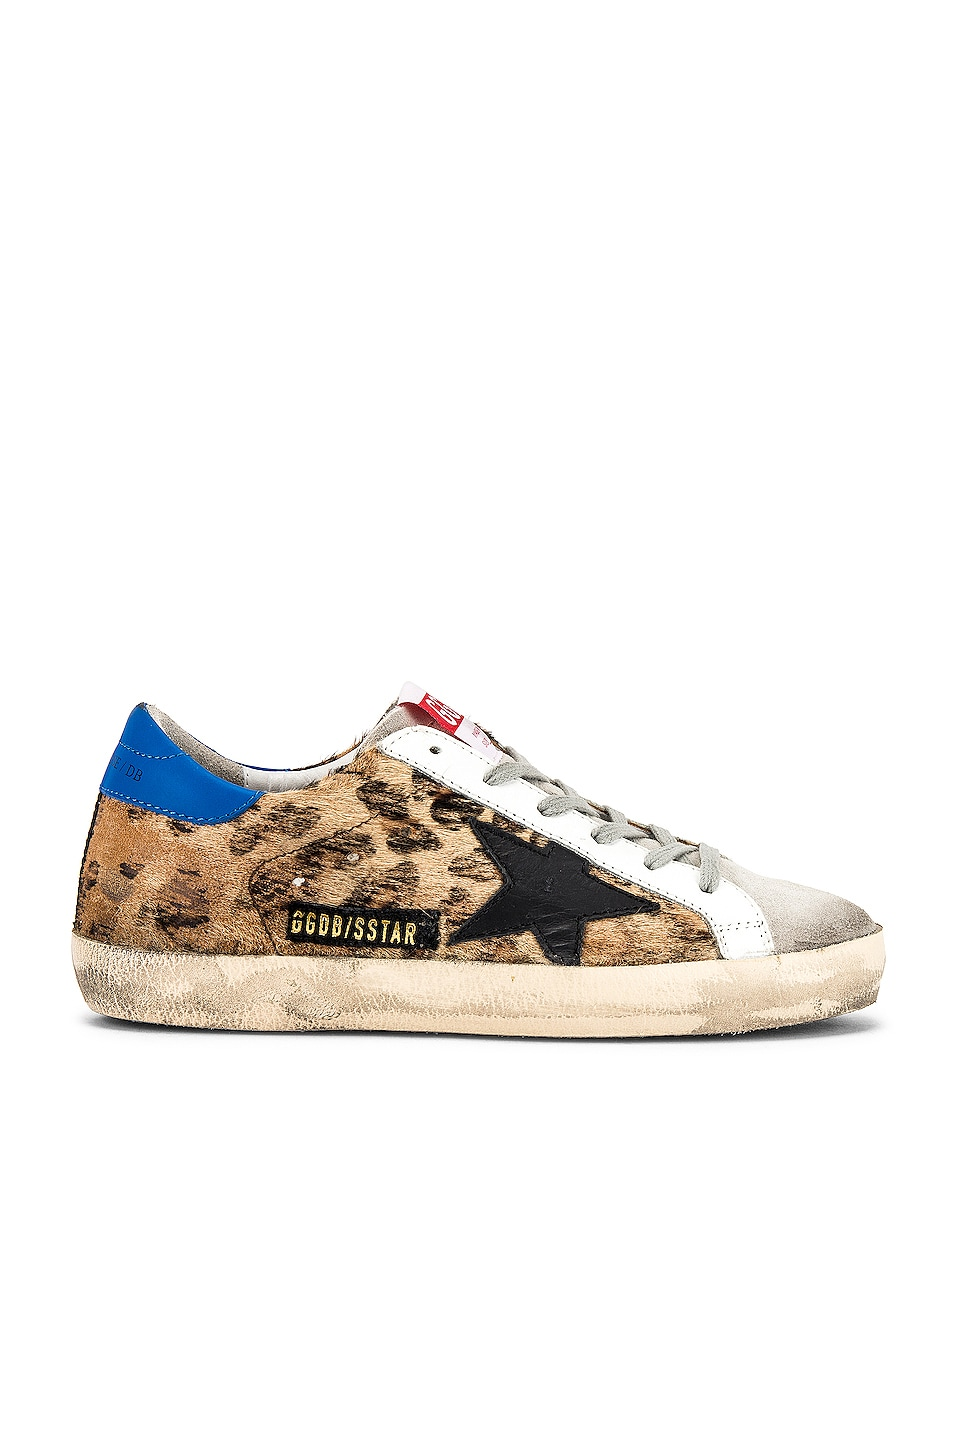 Golden Goose Superstar Sneaker in Snow Leopard & Royal